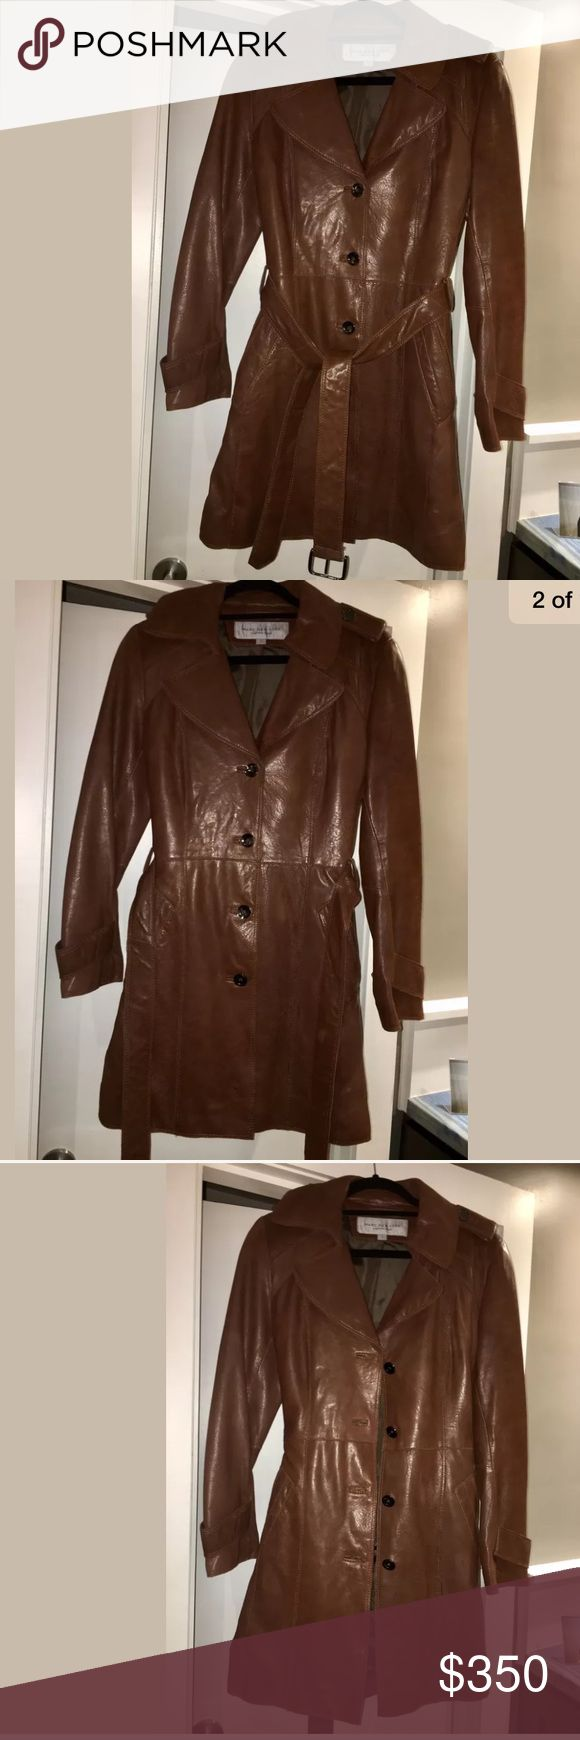 Andrew Marc Distressed Leather Trench Coat, small AUTHENTIC ANDREW MARC DISTRESSED BROWN (GENUINE LEATHER) TRENCH COAT, SIZE SMALL.    ANDREW MARC BELTED TRENCH COAT, SIZE SMALL. RUNS TRUE TO SIZE. HEADS WILL TURN WHEN YOU SHOW UP IN THIS COOL, SEXY, AND ELEGANT PIECE! AND WHAT GUY DOESN'T LOVE A TRENCH??? DRESS IT UP, DRESS IT DOWN. THIS COAT SPEAKS FOR ITSELF AND MAKES IT'S OWN RULES... Andrew Marc Jackets & Coats Trench Coats